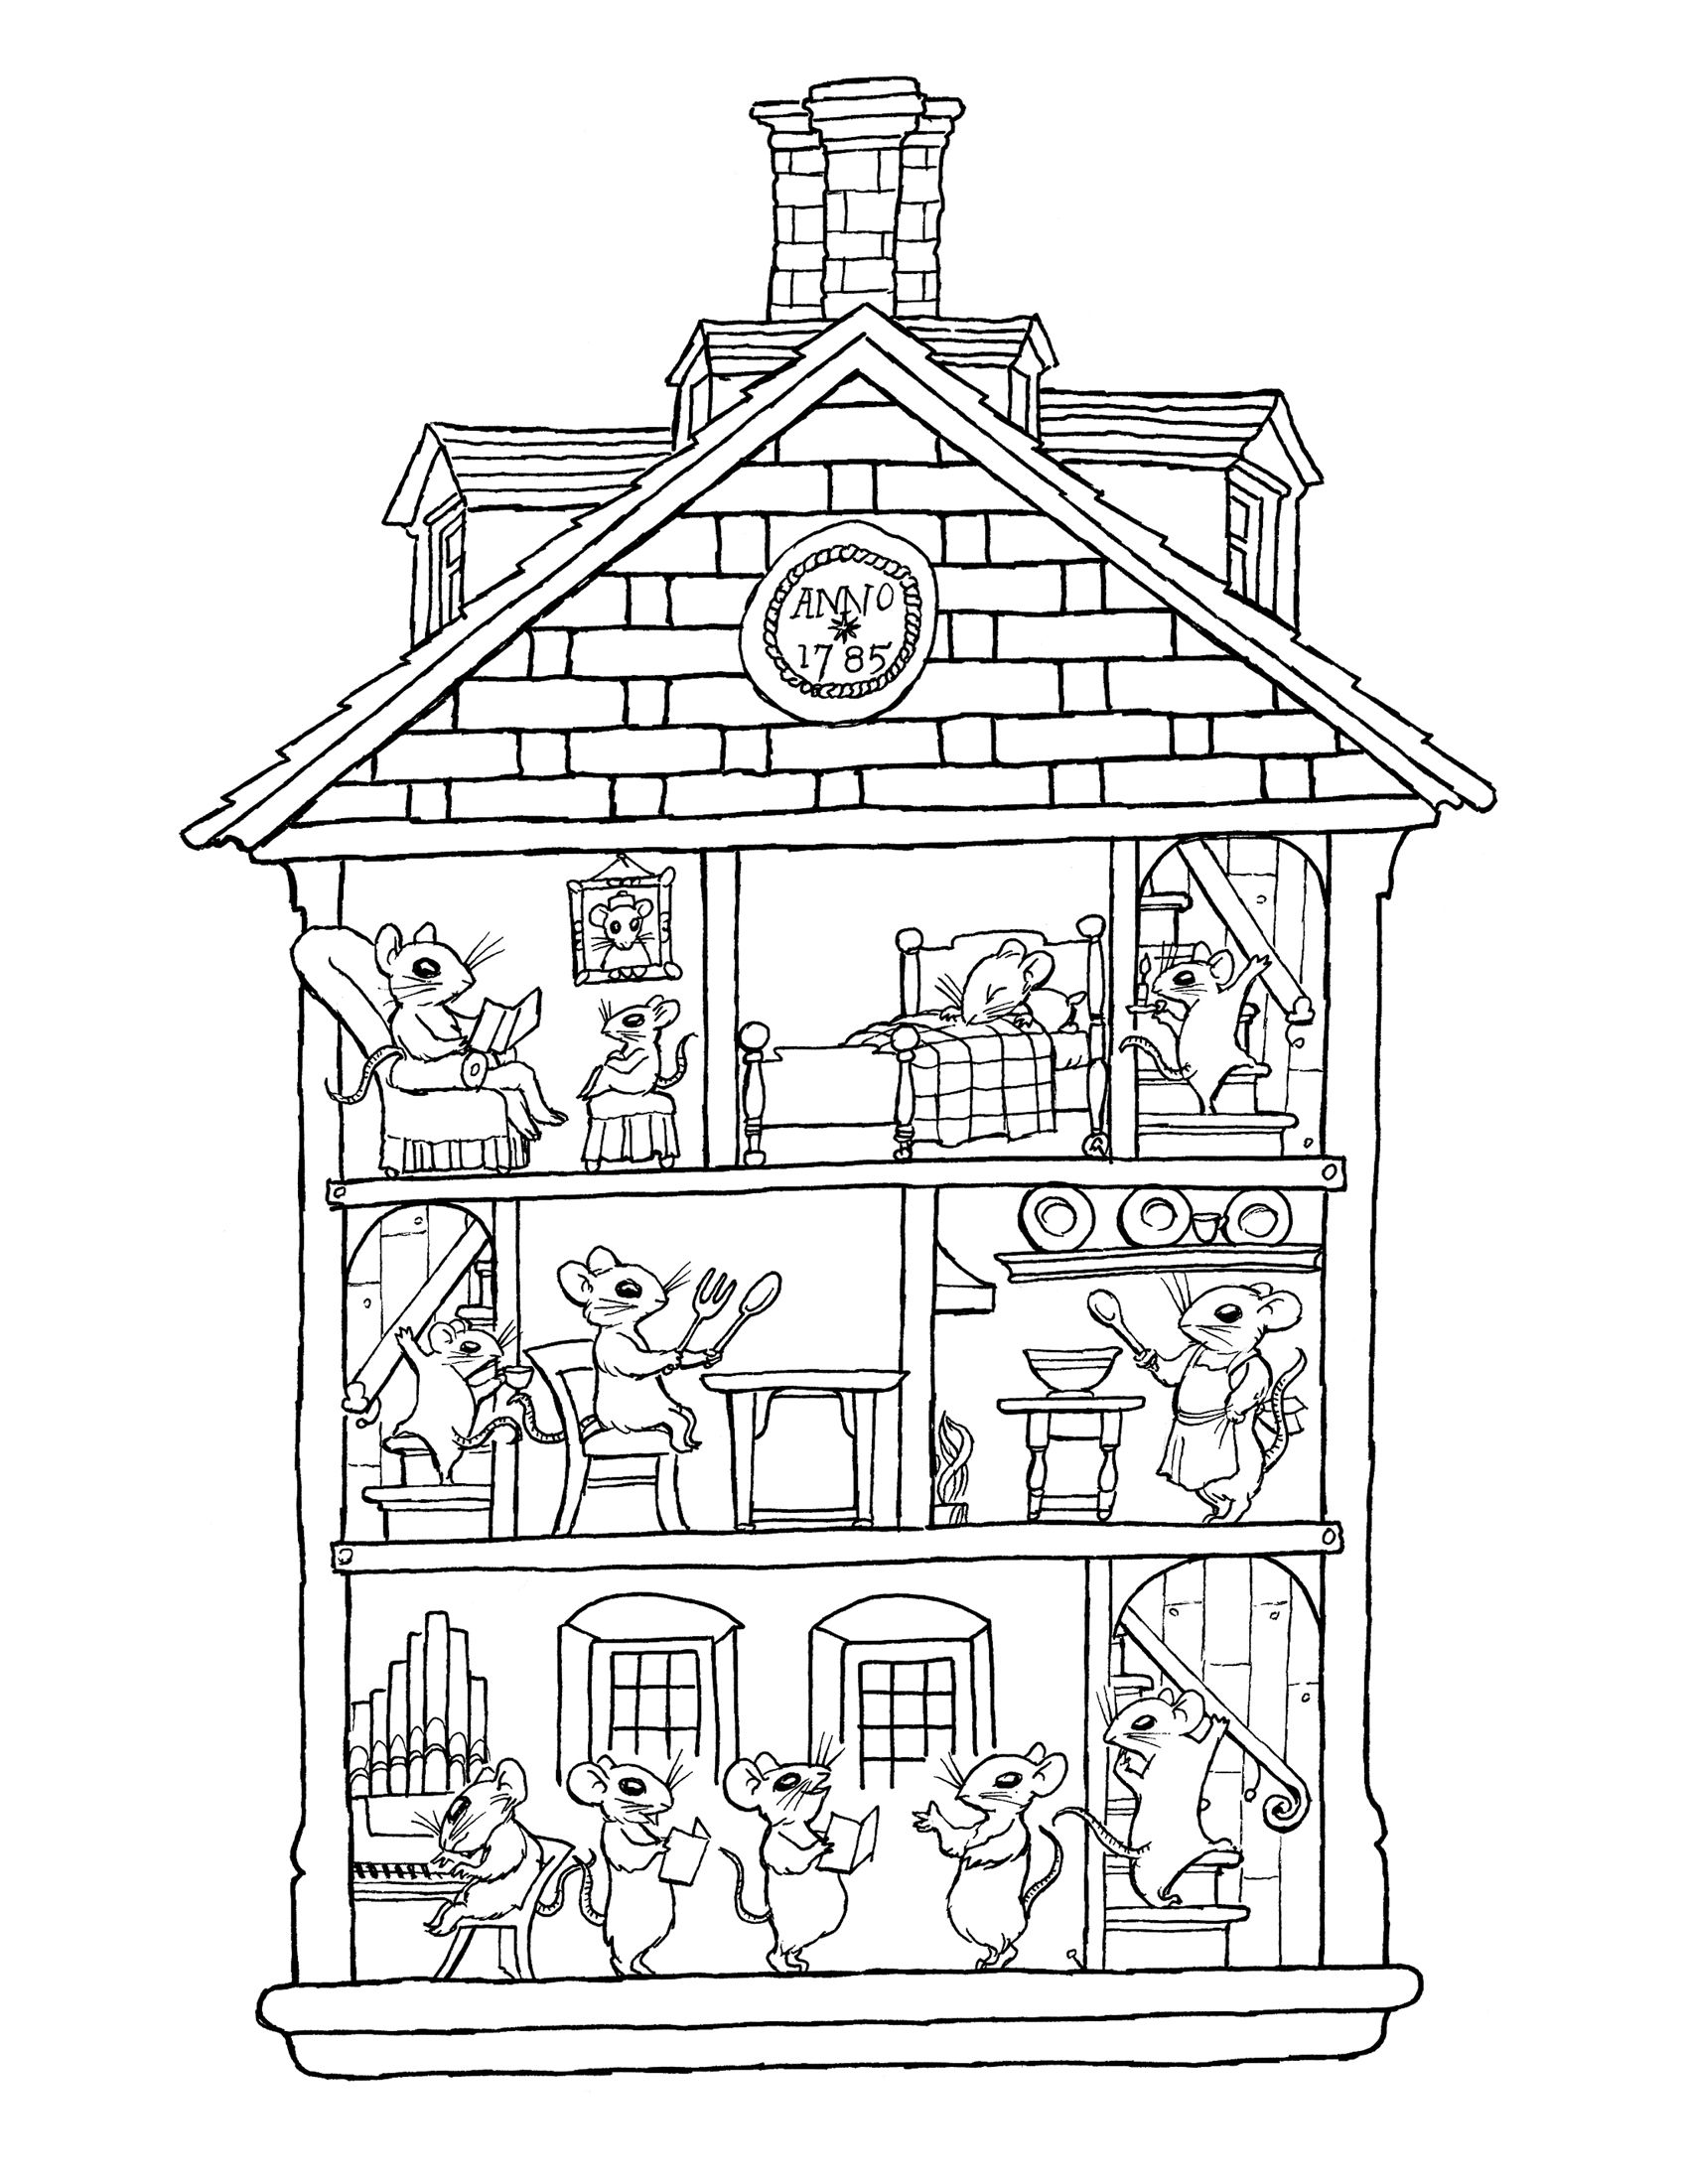 the white house coloring page flag day best  thingkid.com  House